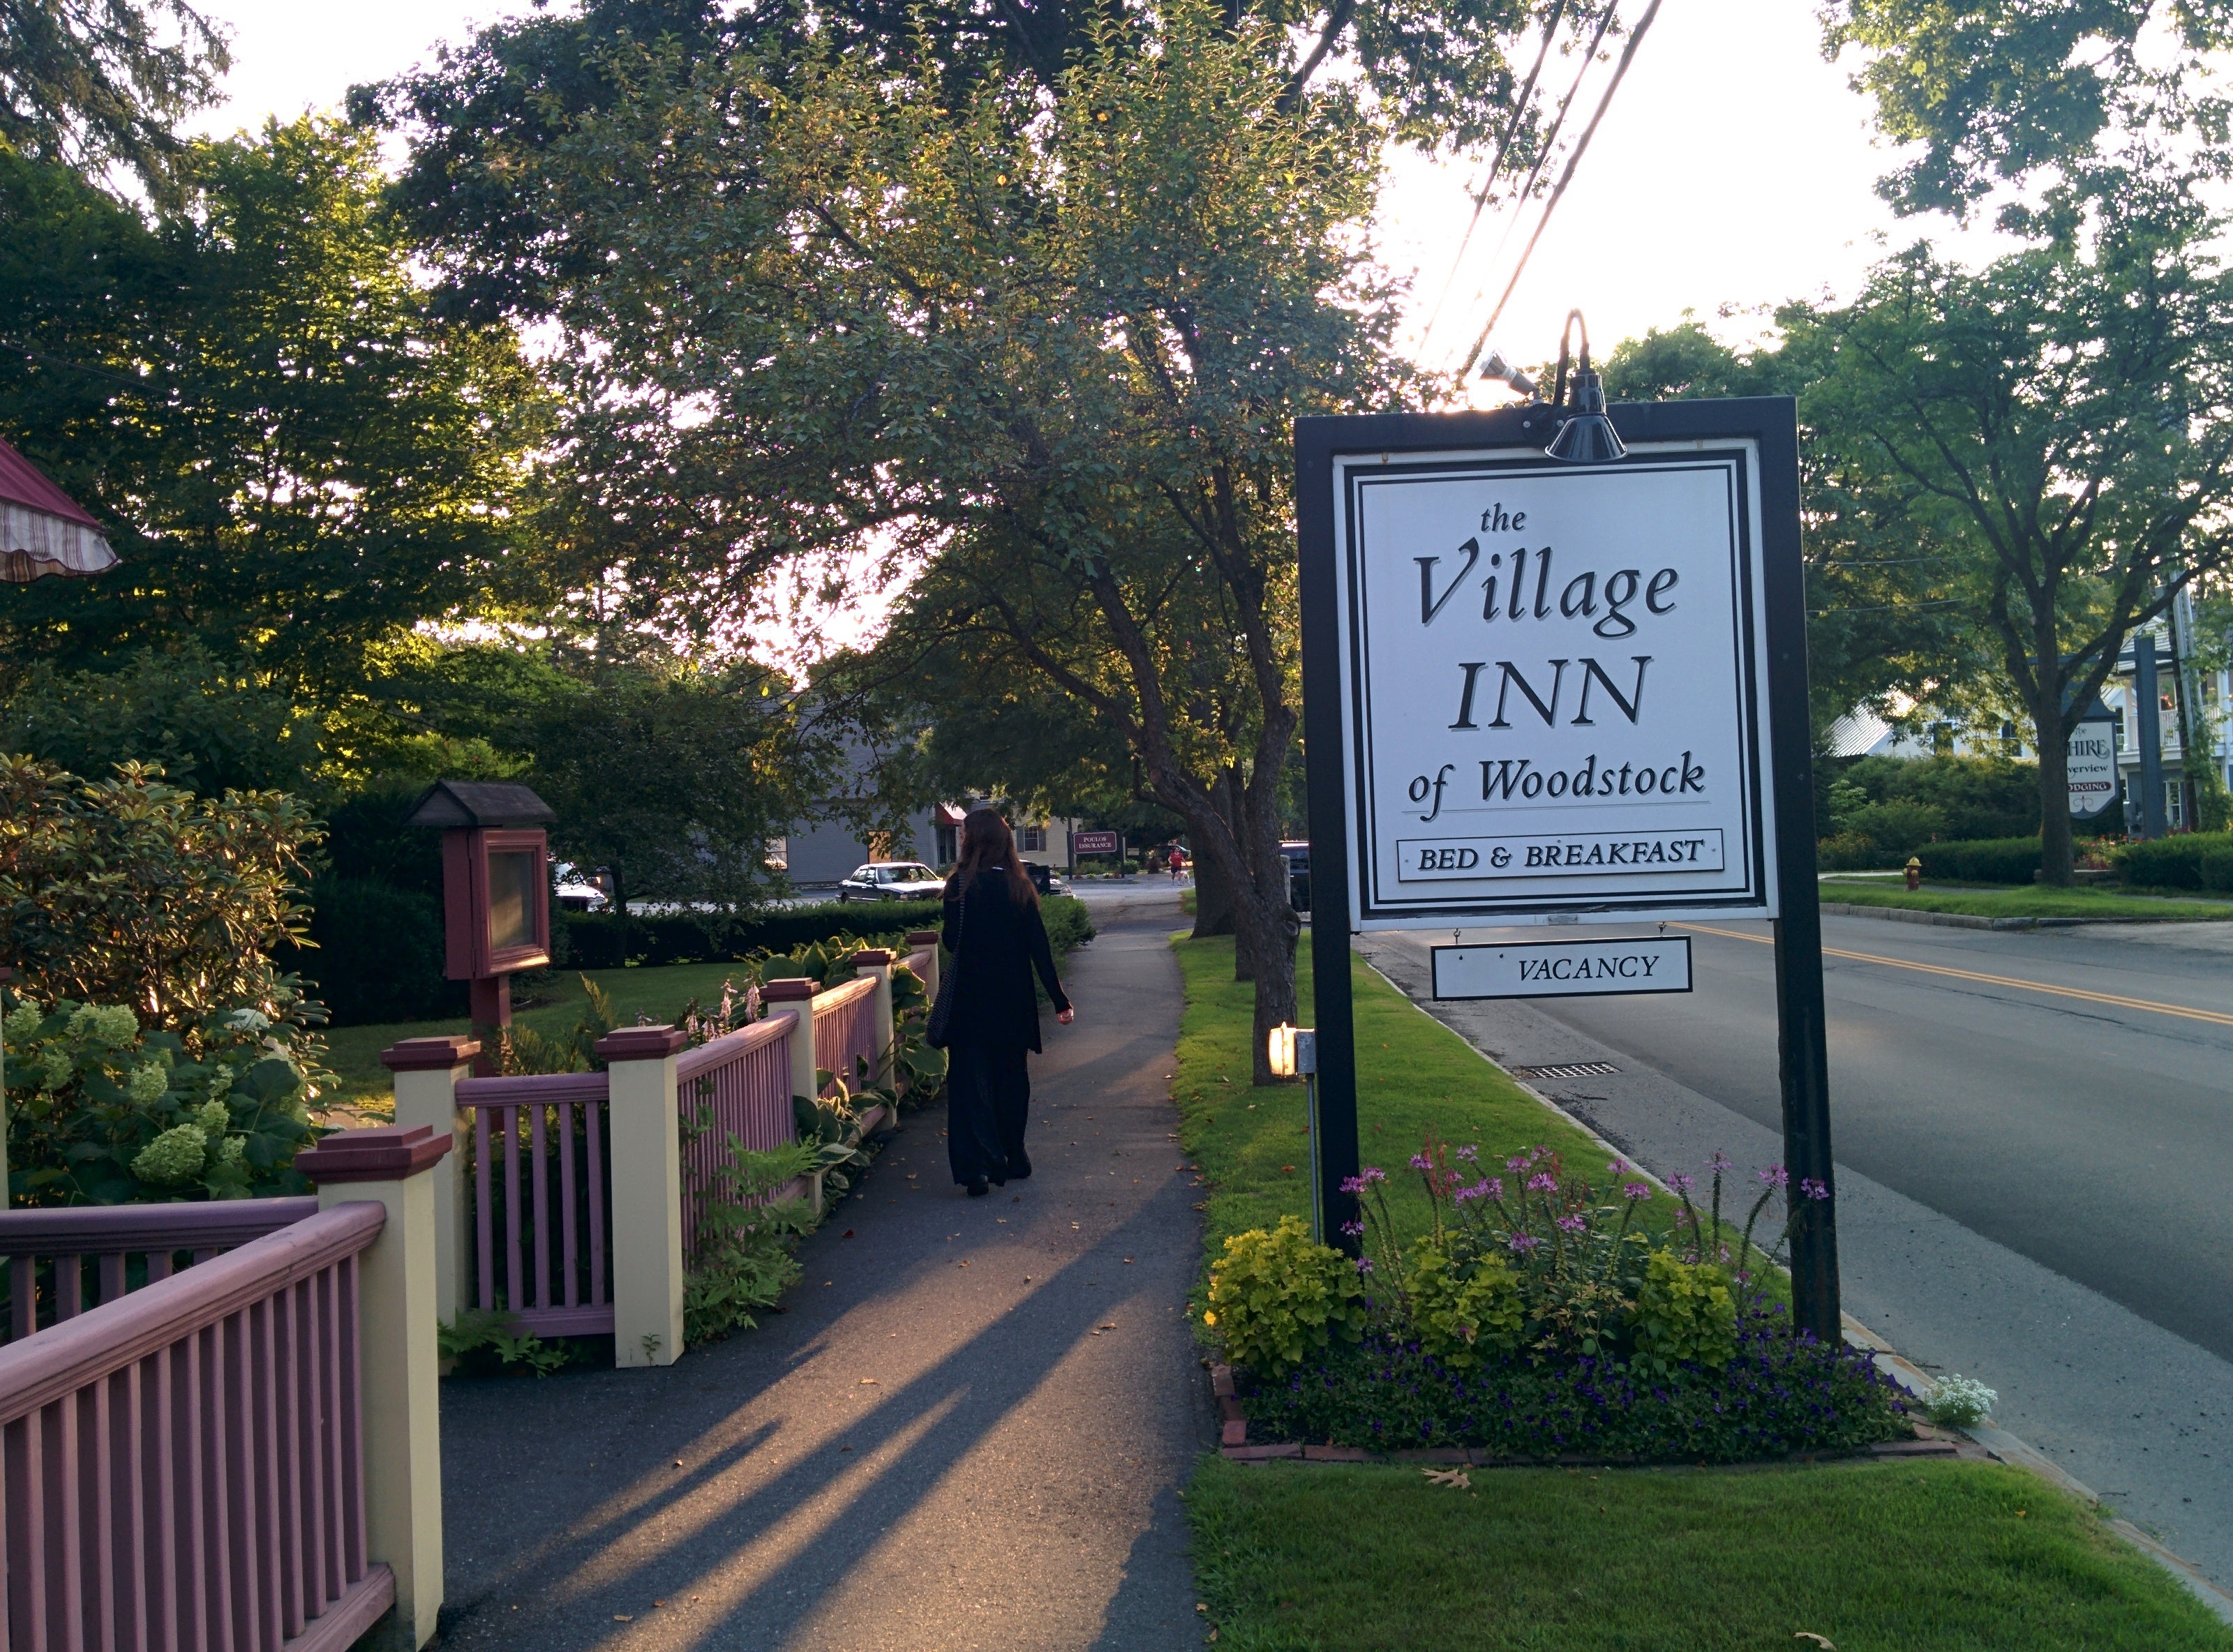 The Village Inn of Woodstock,bed and breakfast,inn,lodging